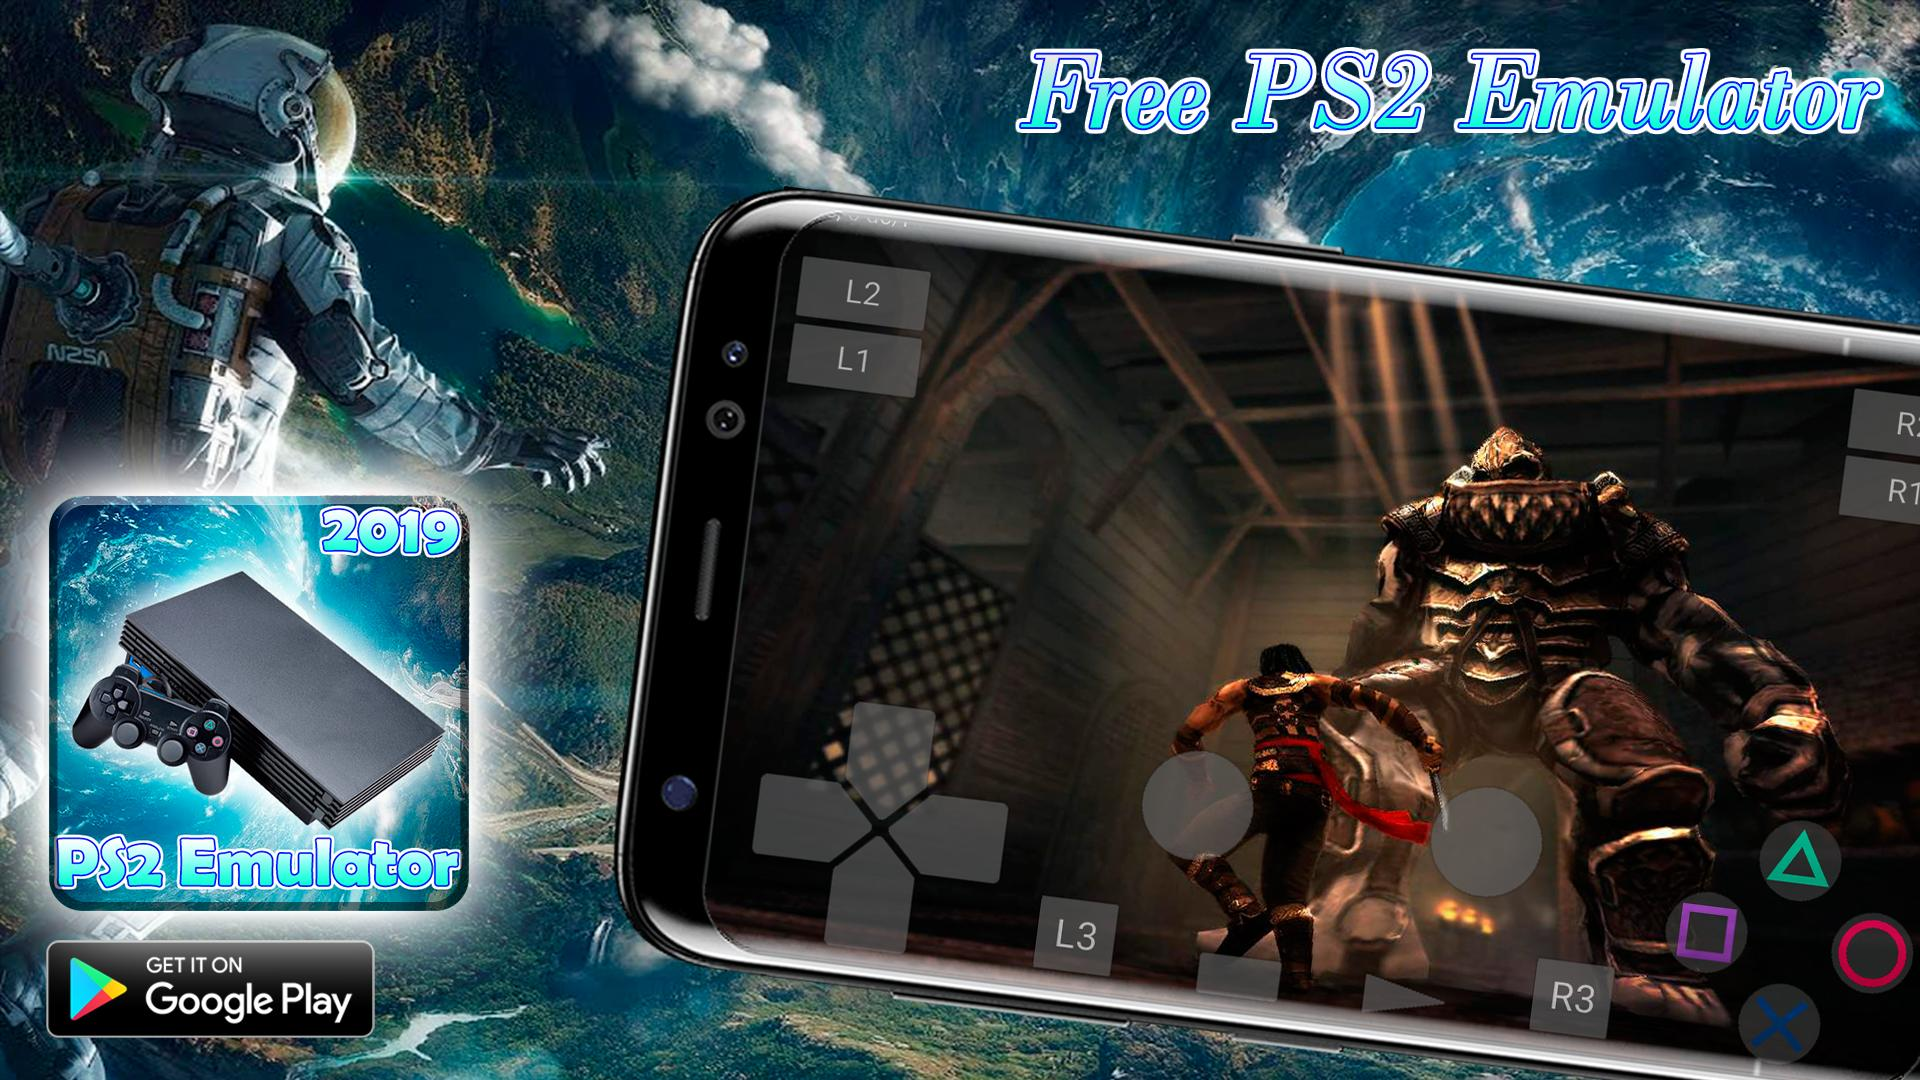 Free Pro PS2 Emulator Games For Android 2019 for Android